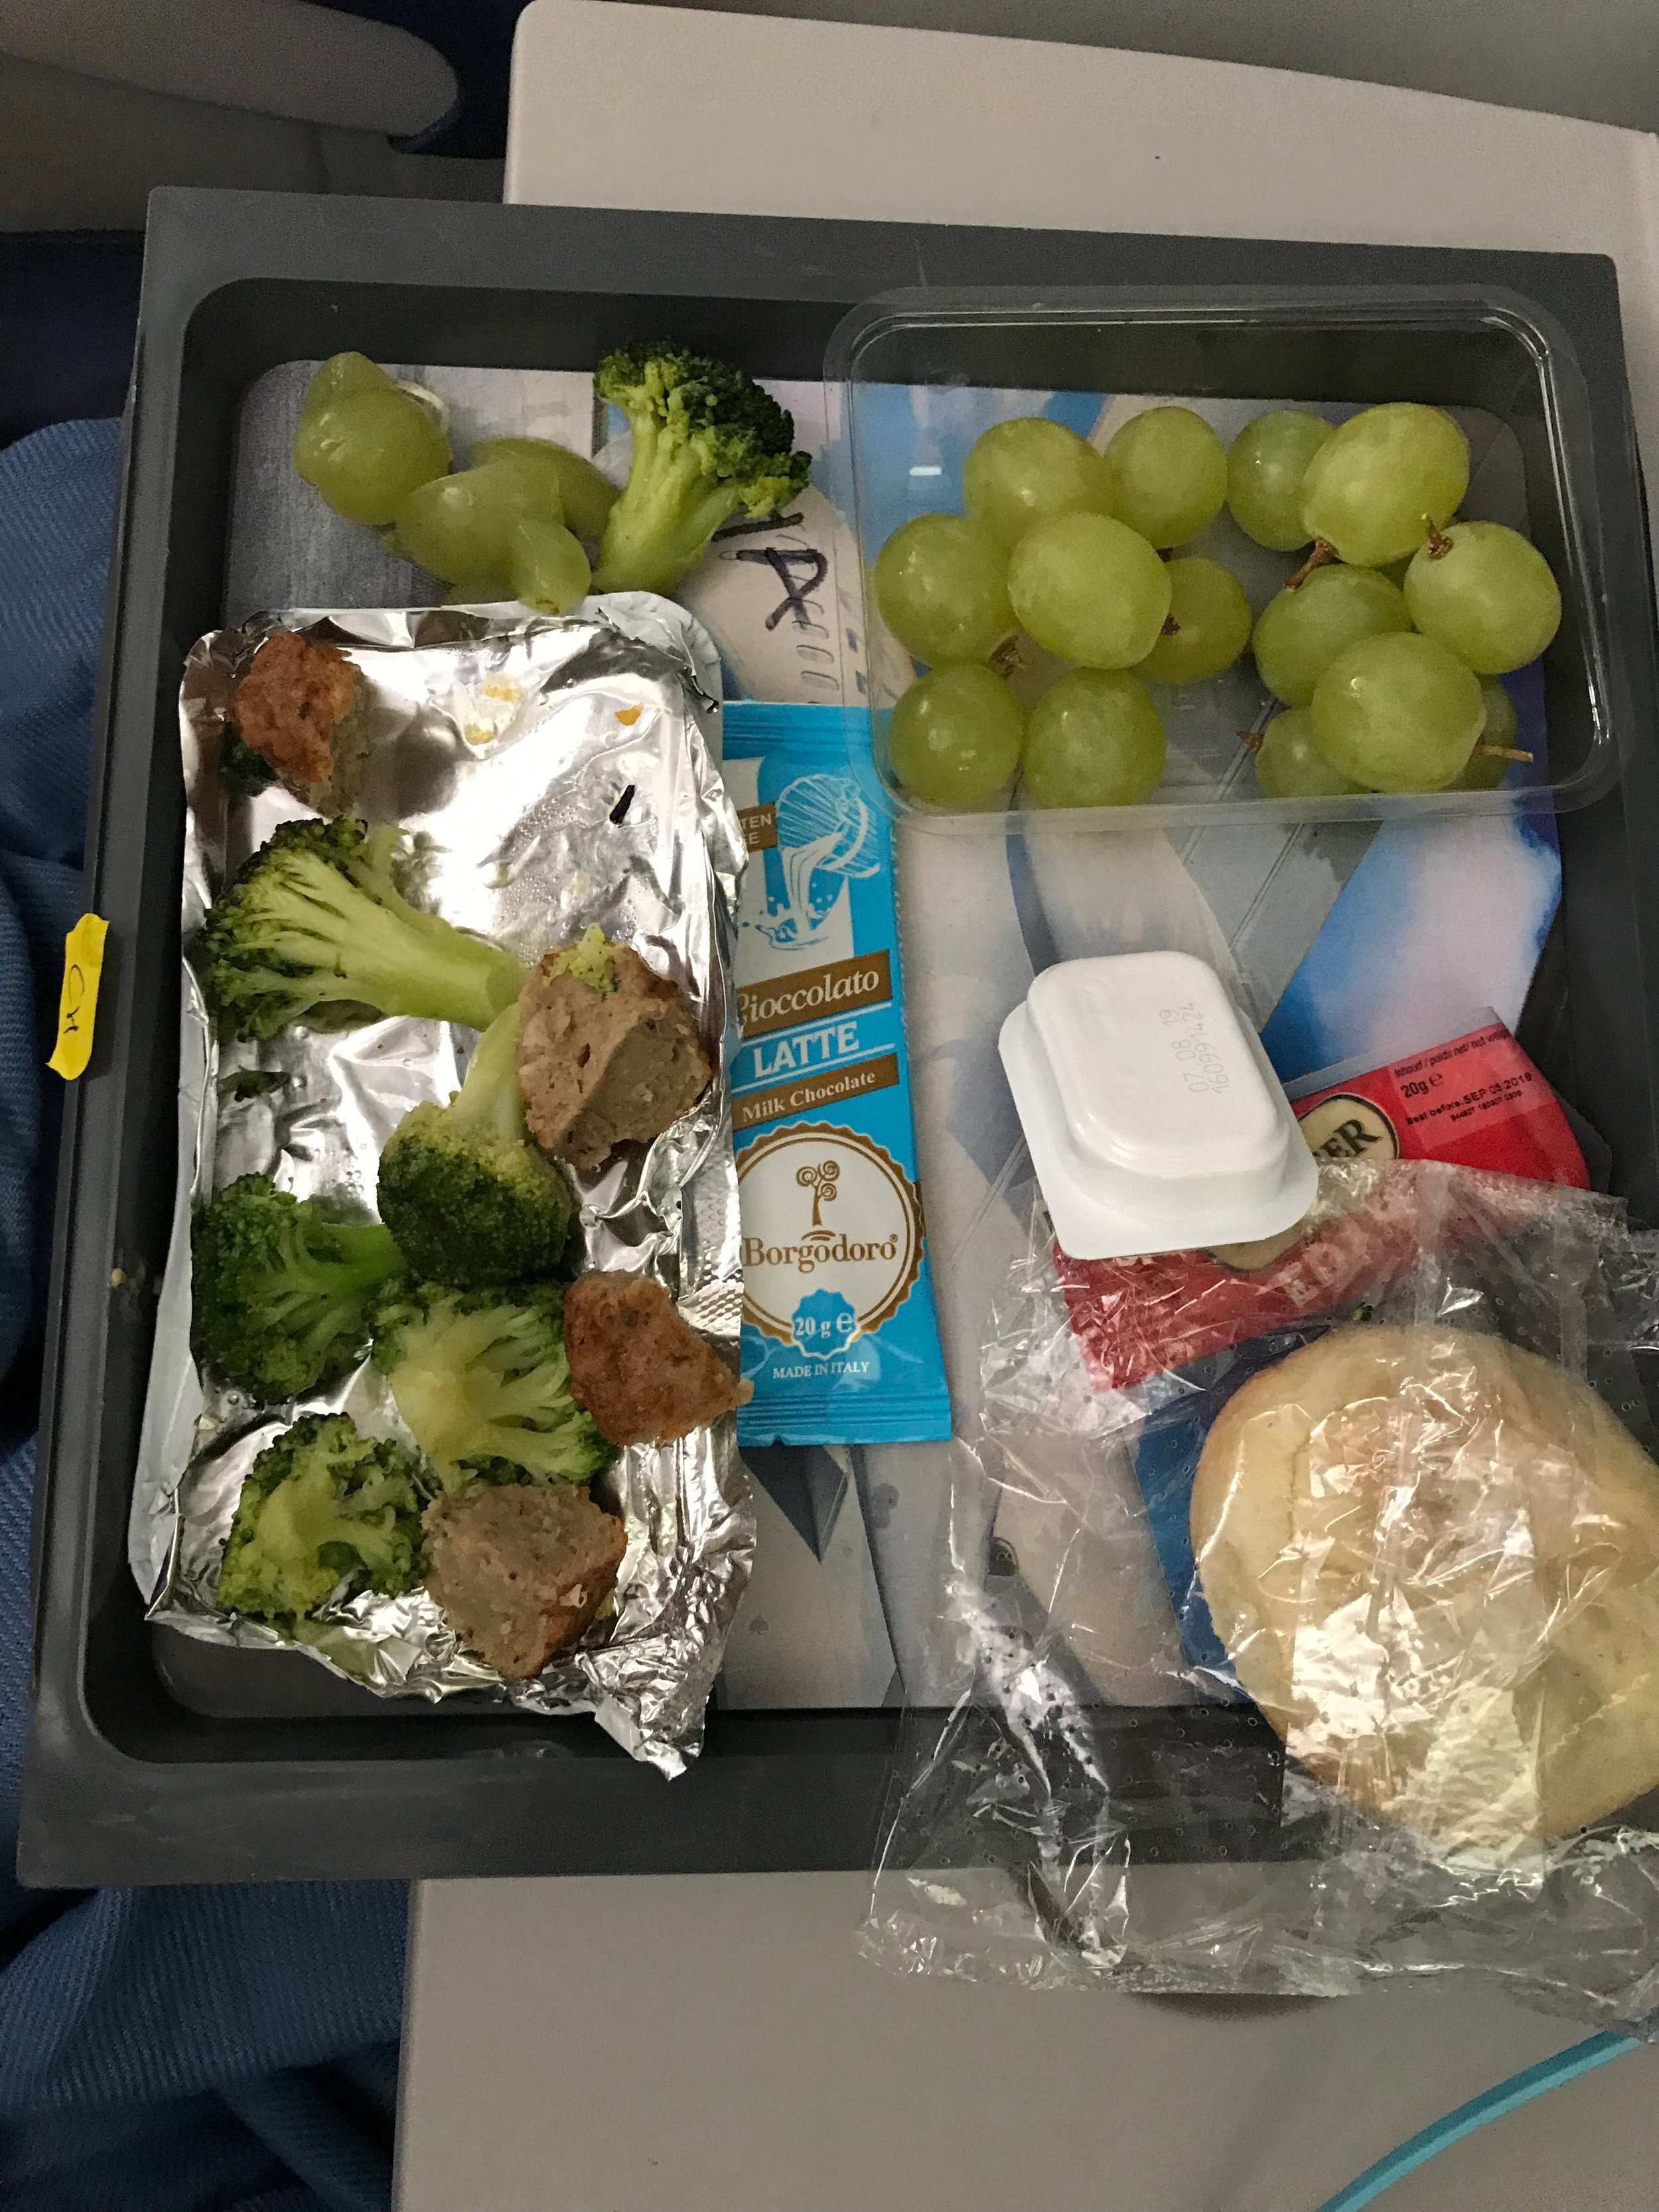 This meal was broccoli, meatballs, grapes, bread with cheese and a dessert.